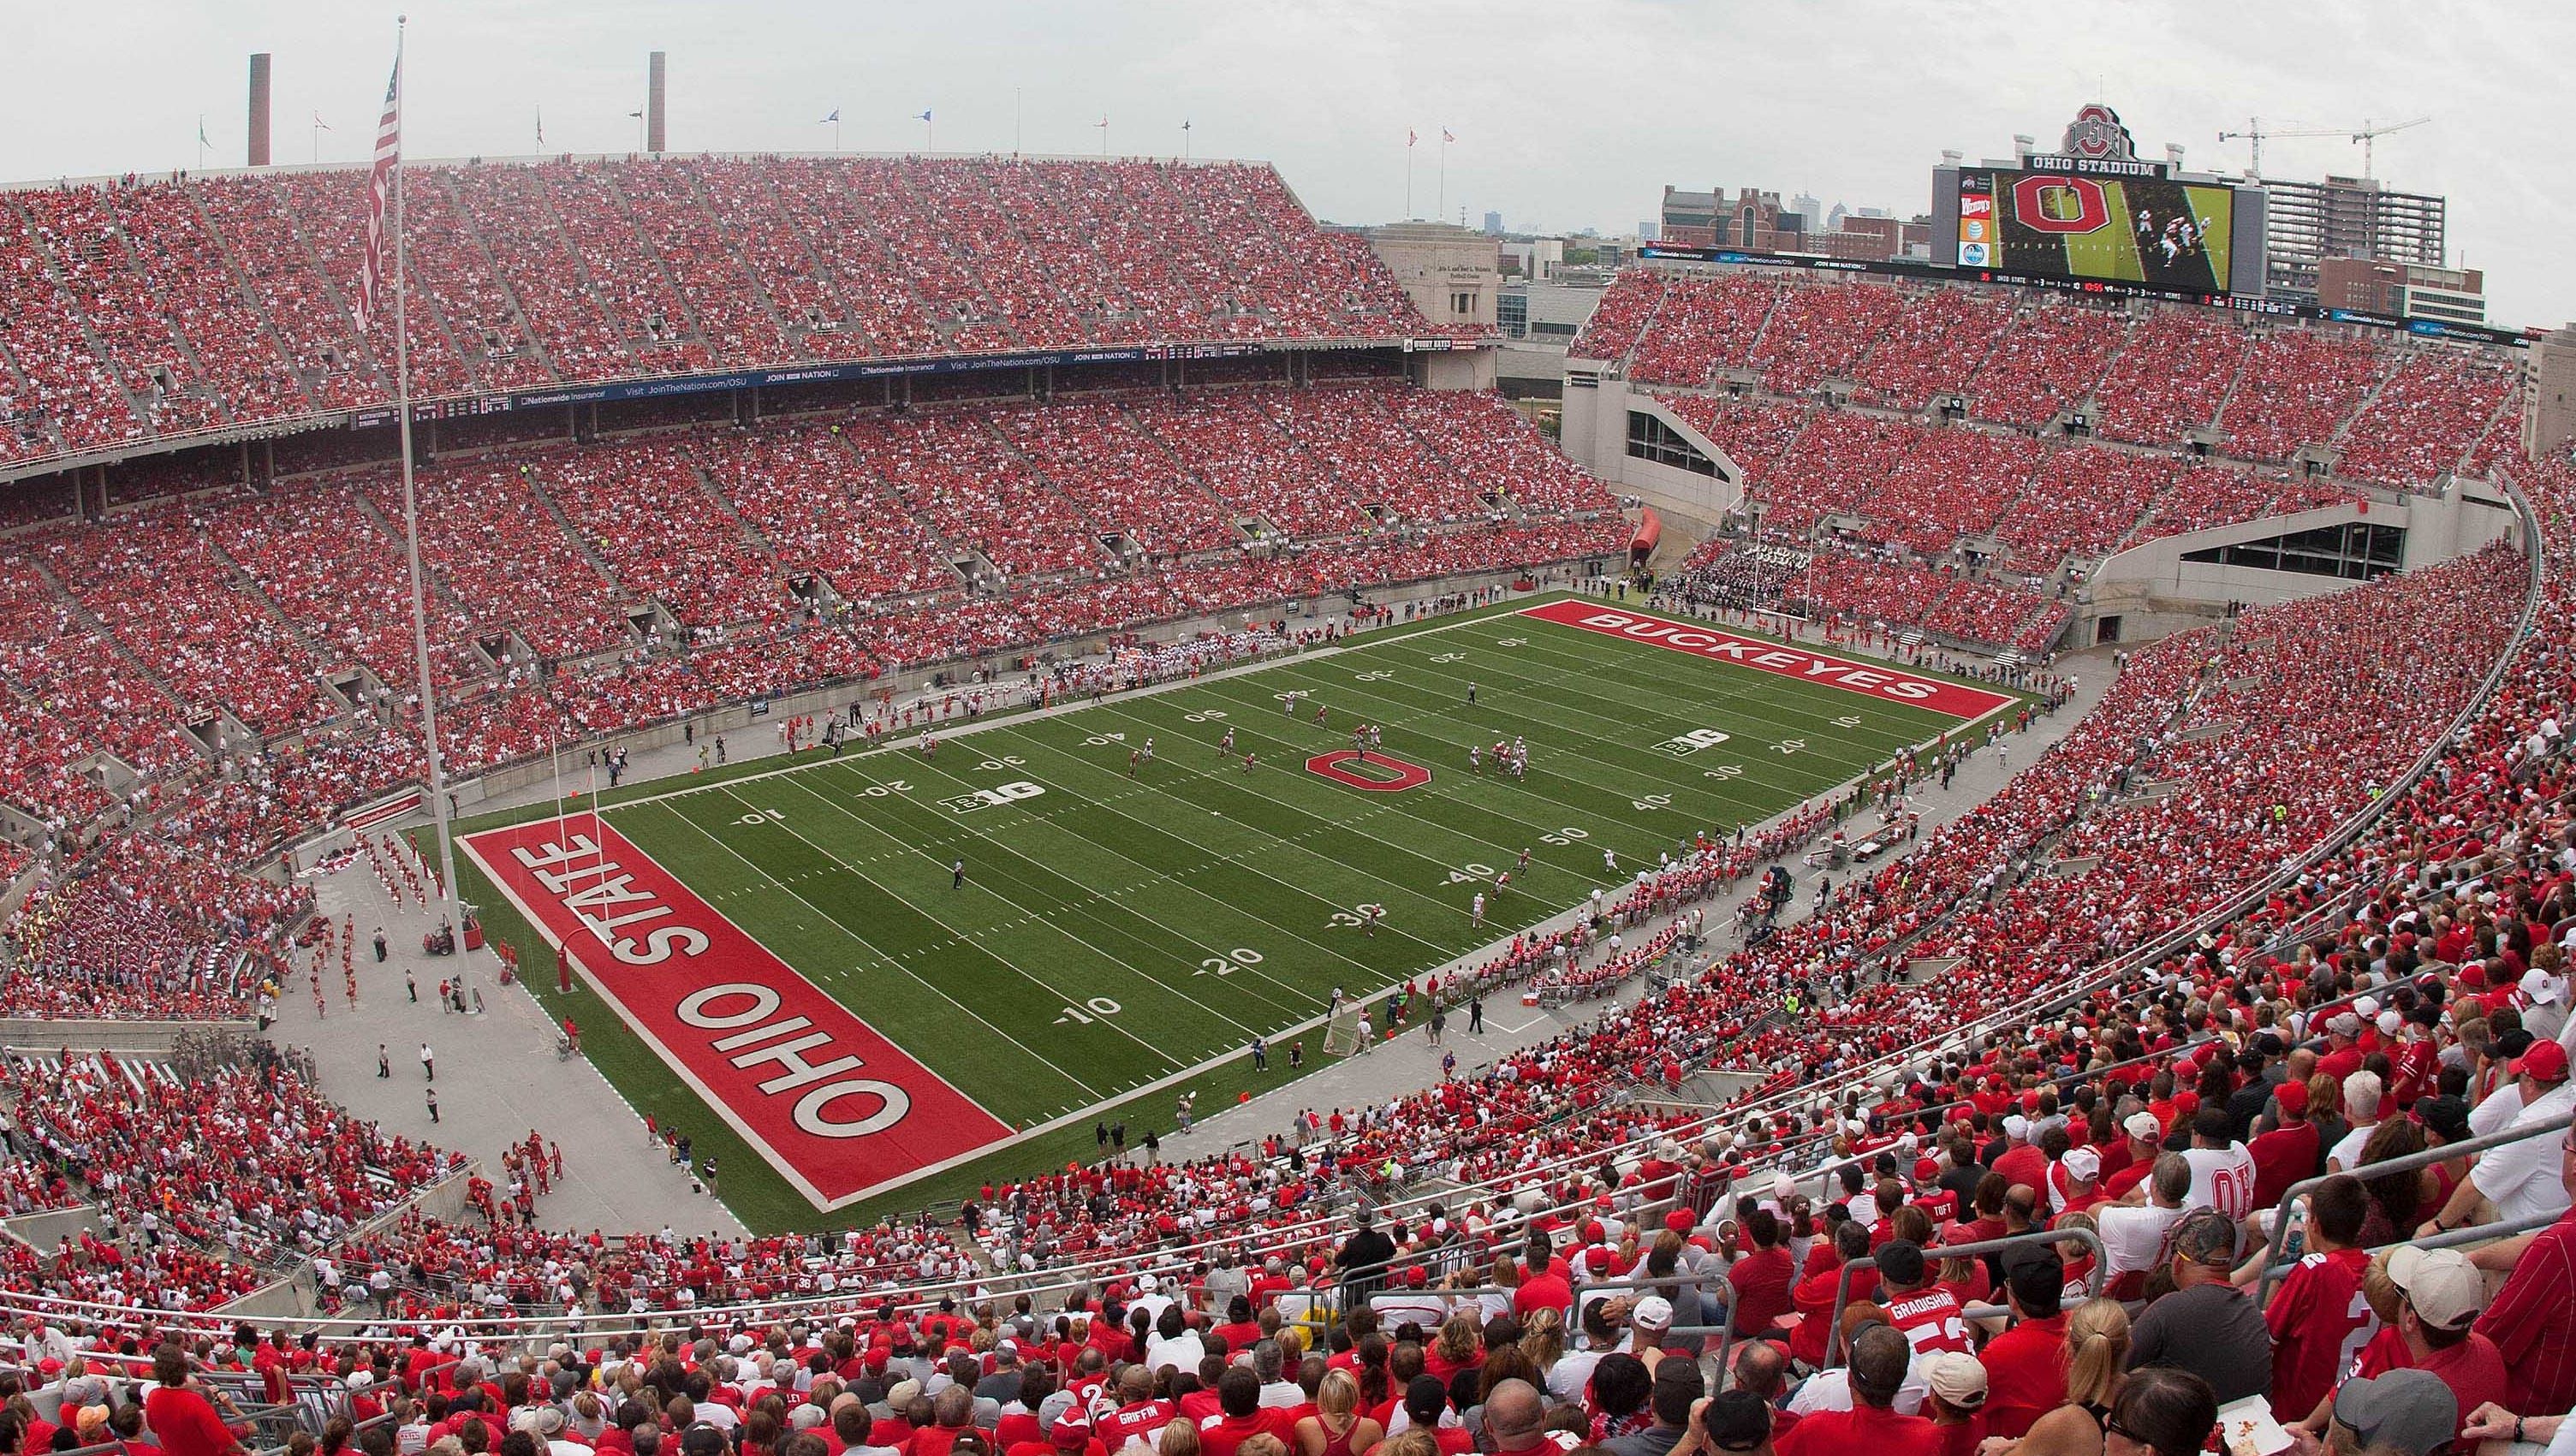 Ohio Stadium, Ohio State: Built more than 90 years ago alongside the Olentangy River, Ohio Stadium is most known for its horseshoe configuration that also includes a scenic rotunda at the north end.